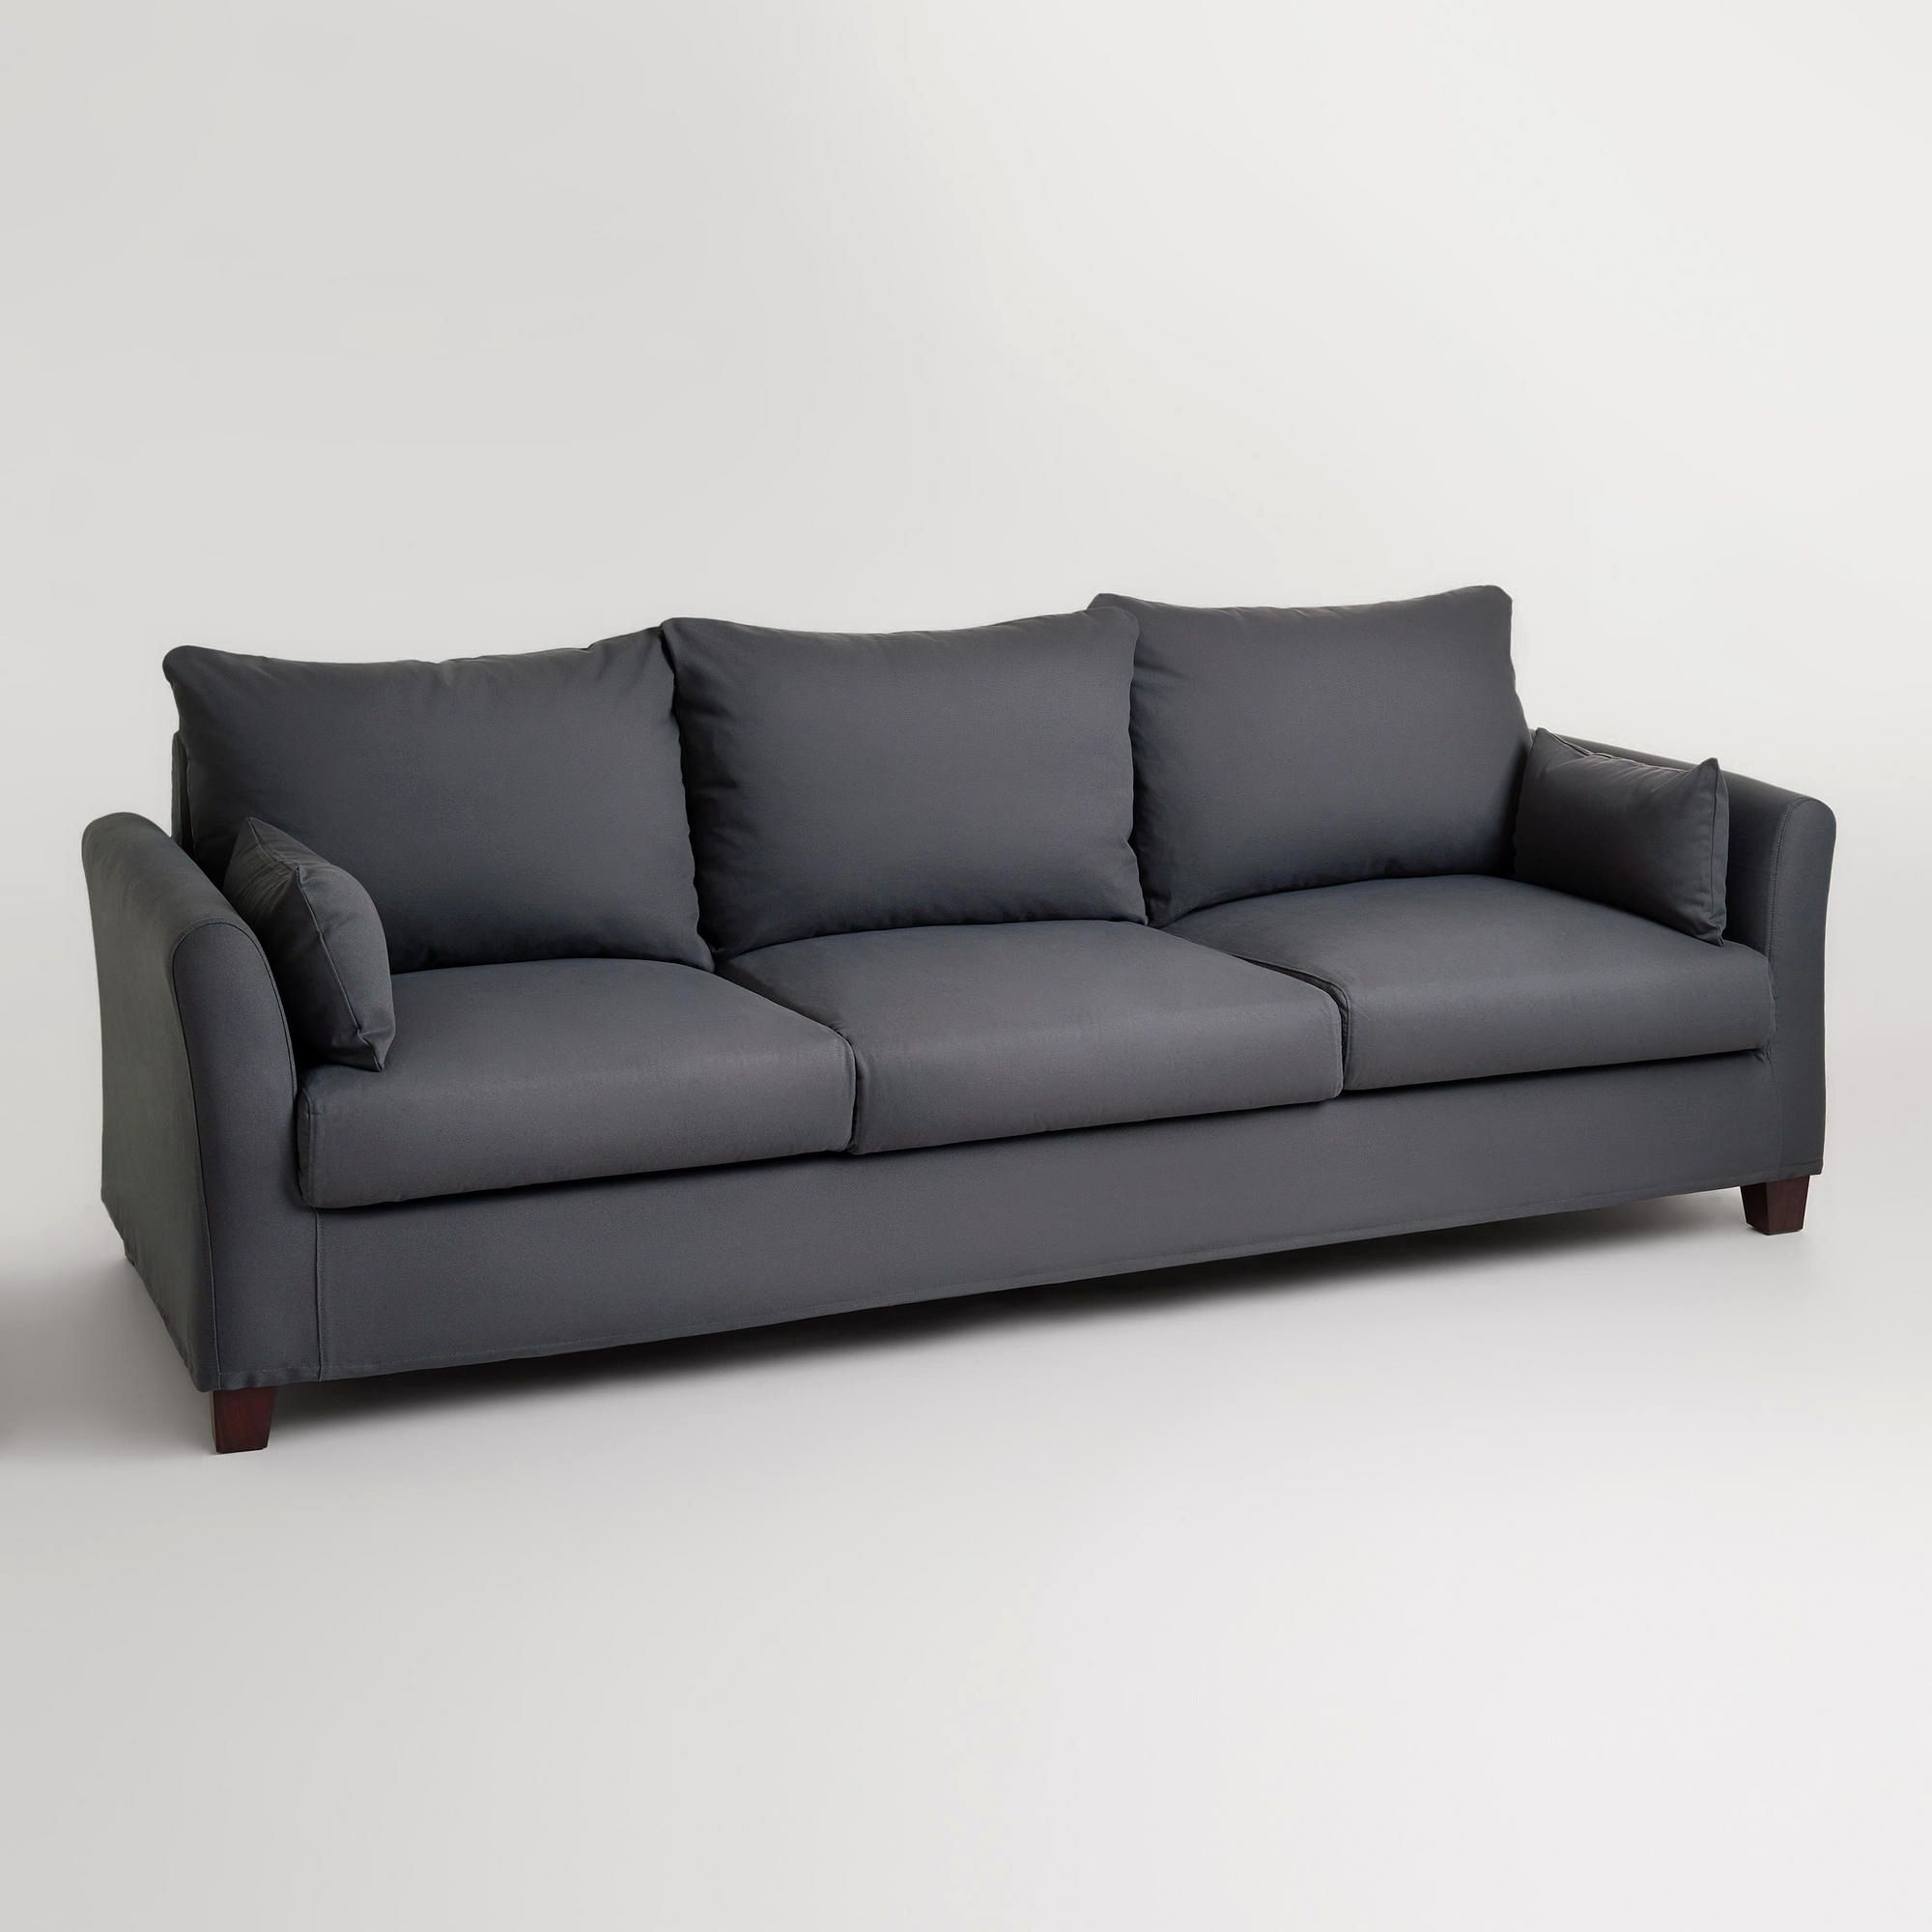 Pleasant Unique 3 Seat Sofa Cover Picture Charcoal Canvas Luxe 3 Seat Gmtry Best Dining Table And Chair Ideas Images Gmtryco